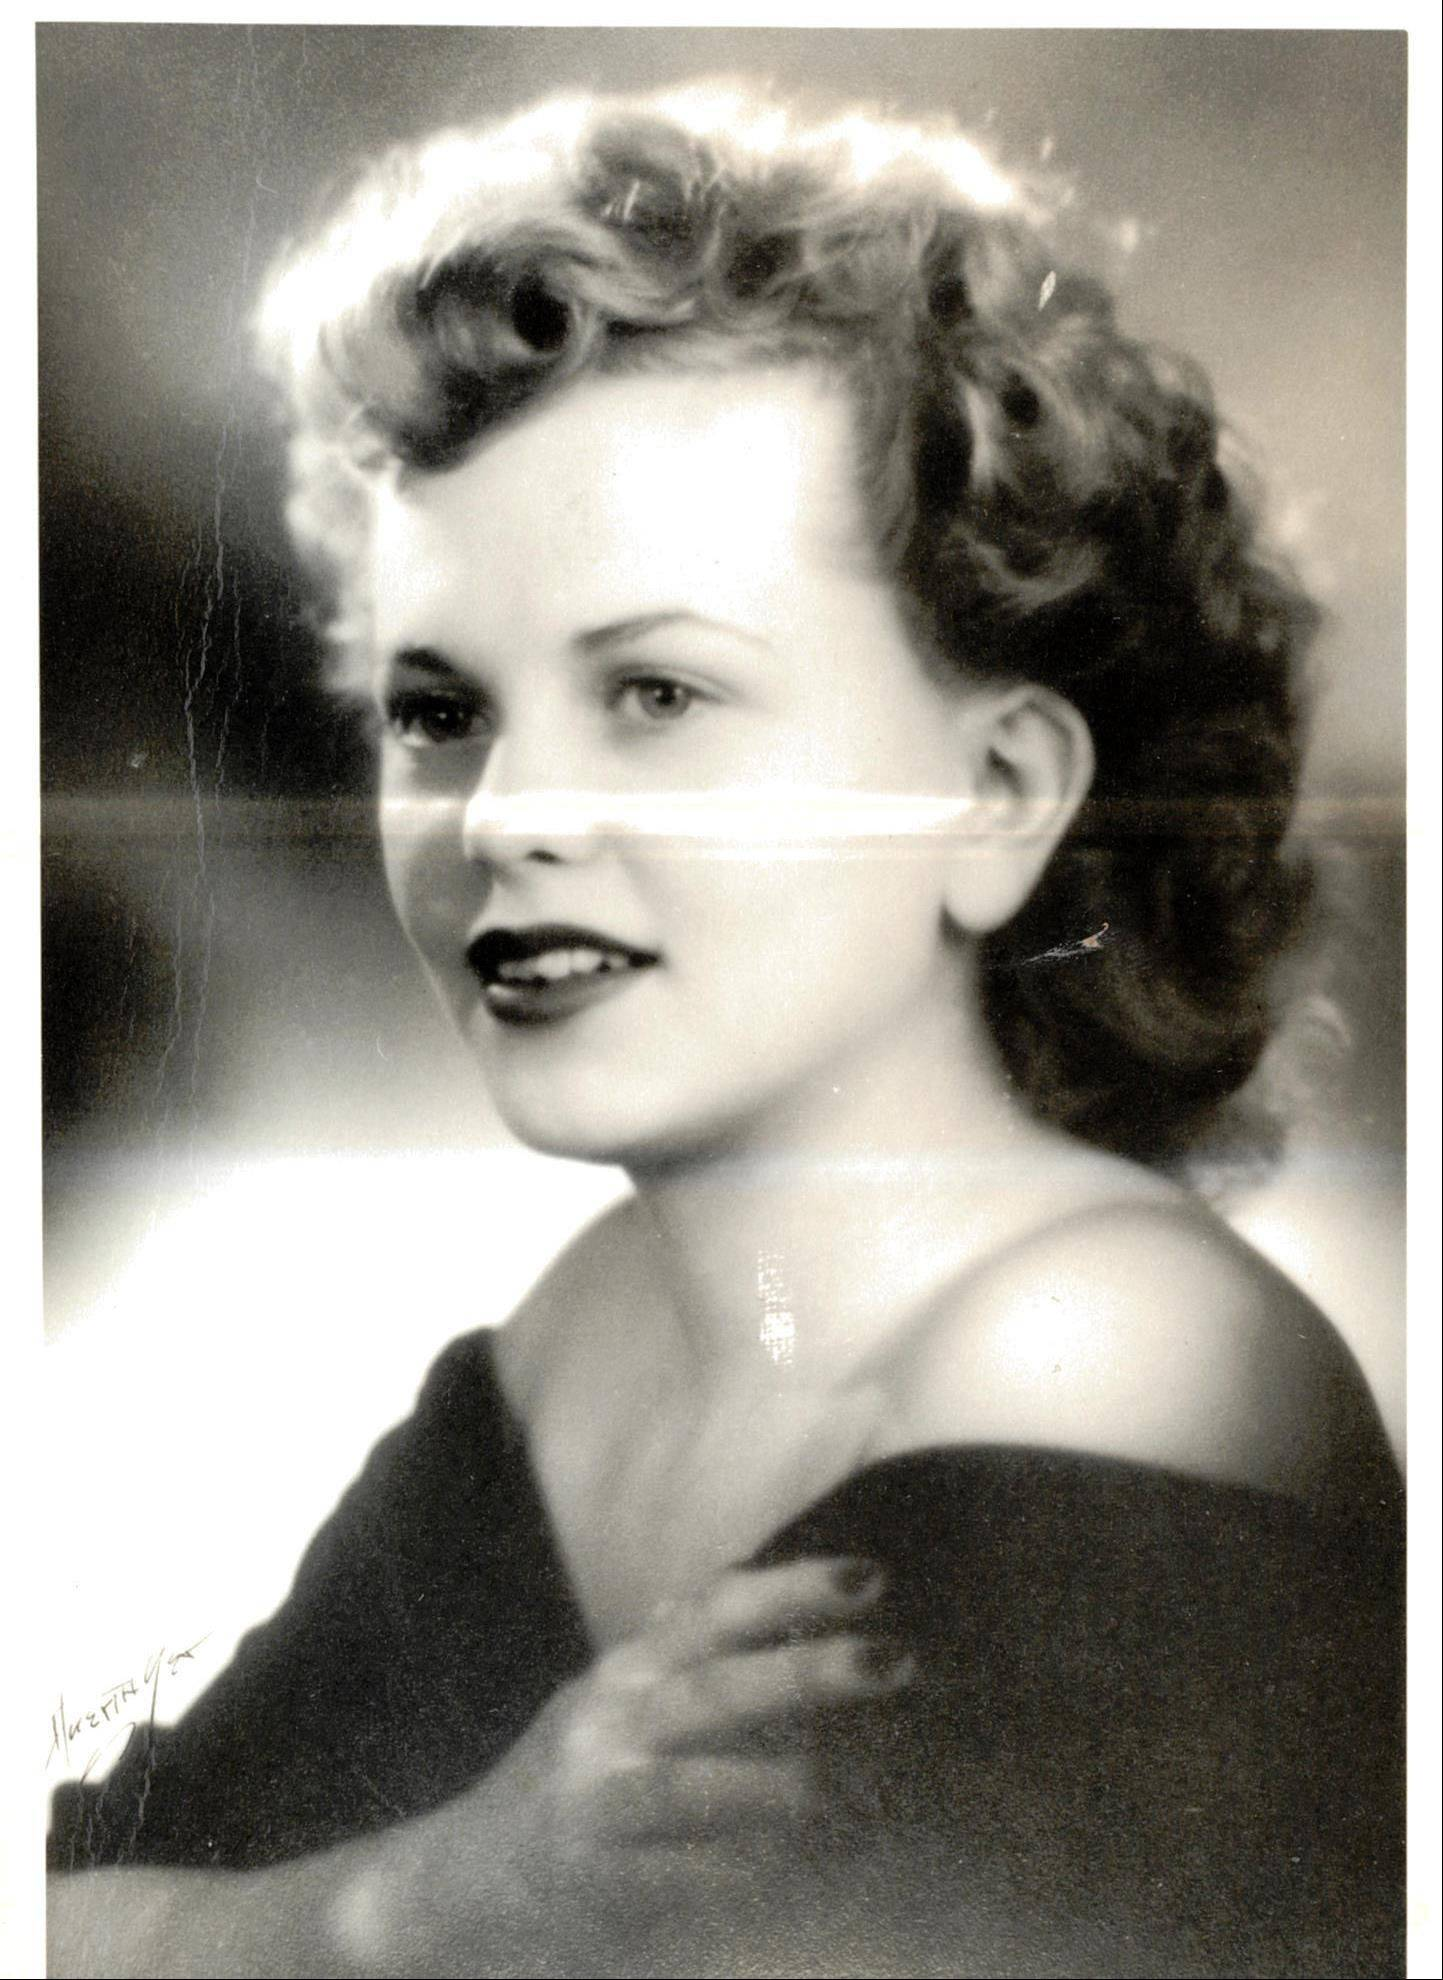 Juil Patricia Wasmond, of Cary, is pictured around the time of her graduation in 1944 from St. Edward High School in Elgin.